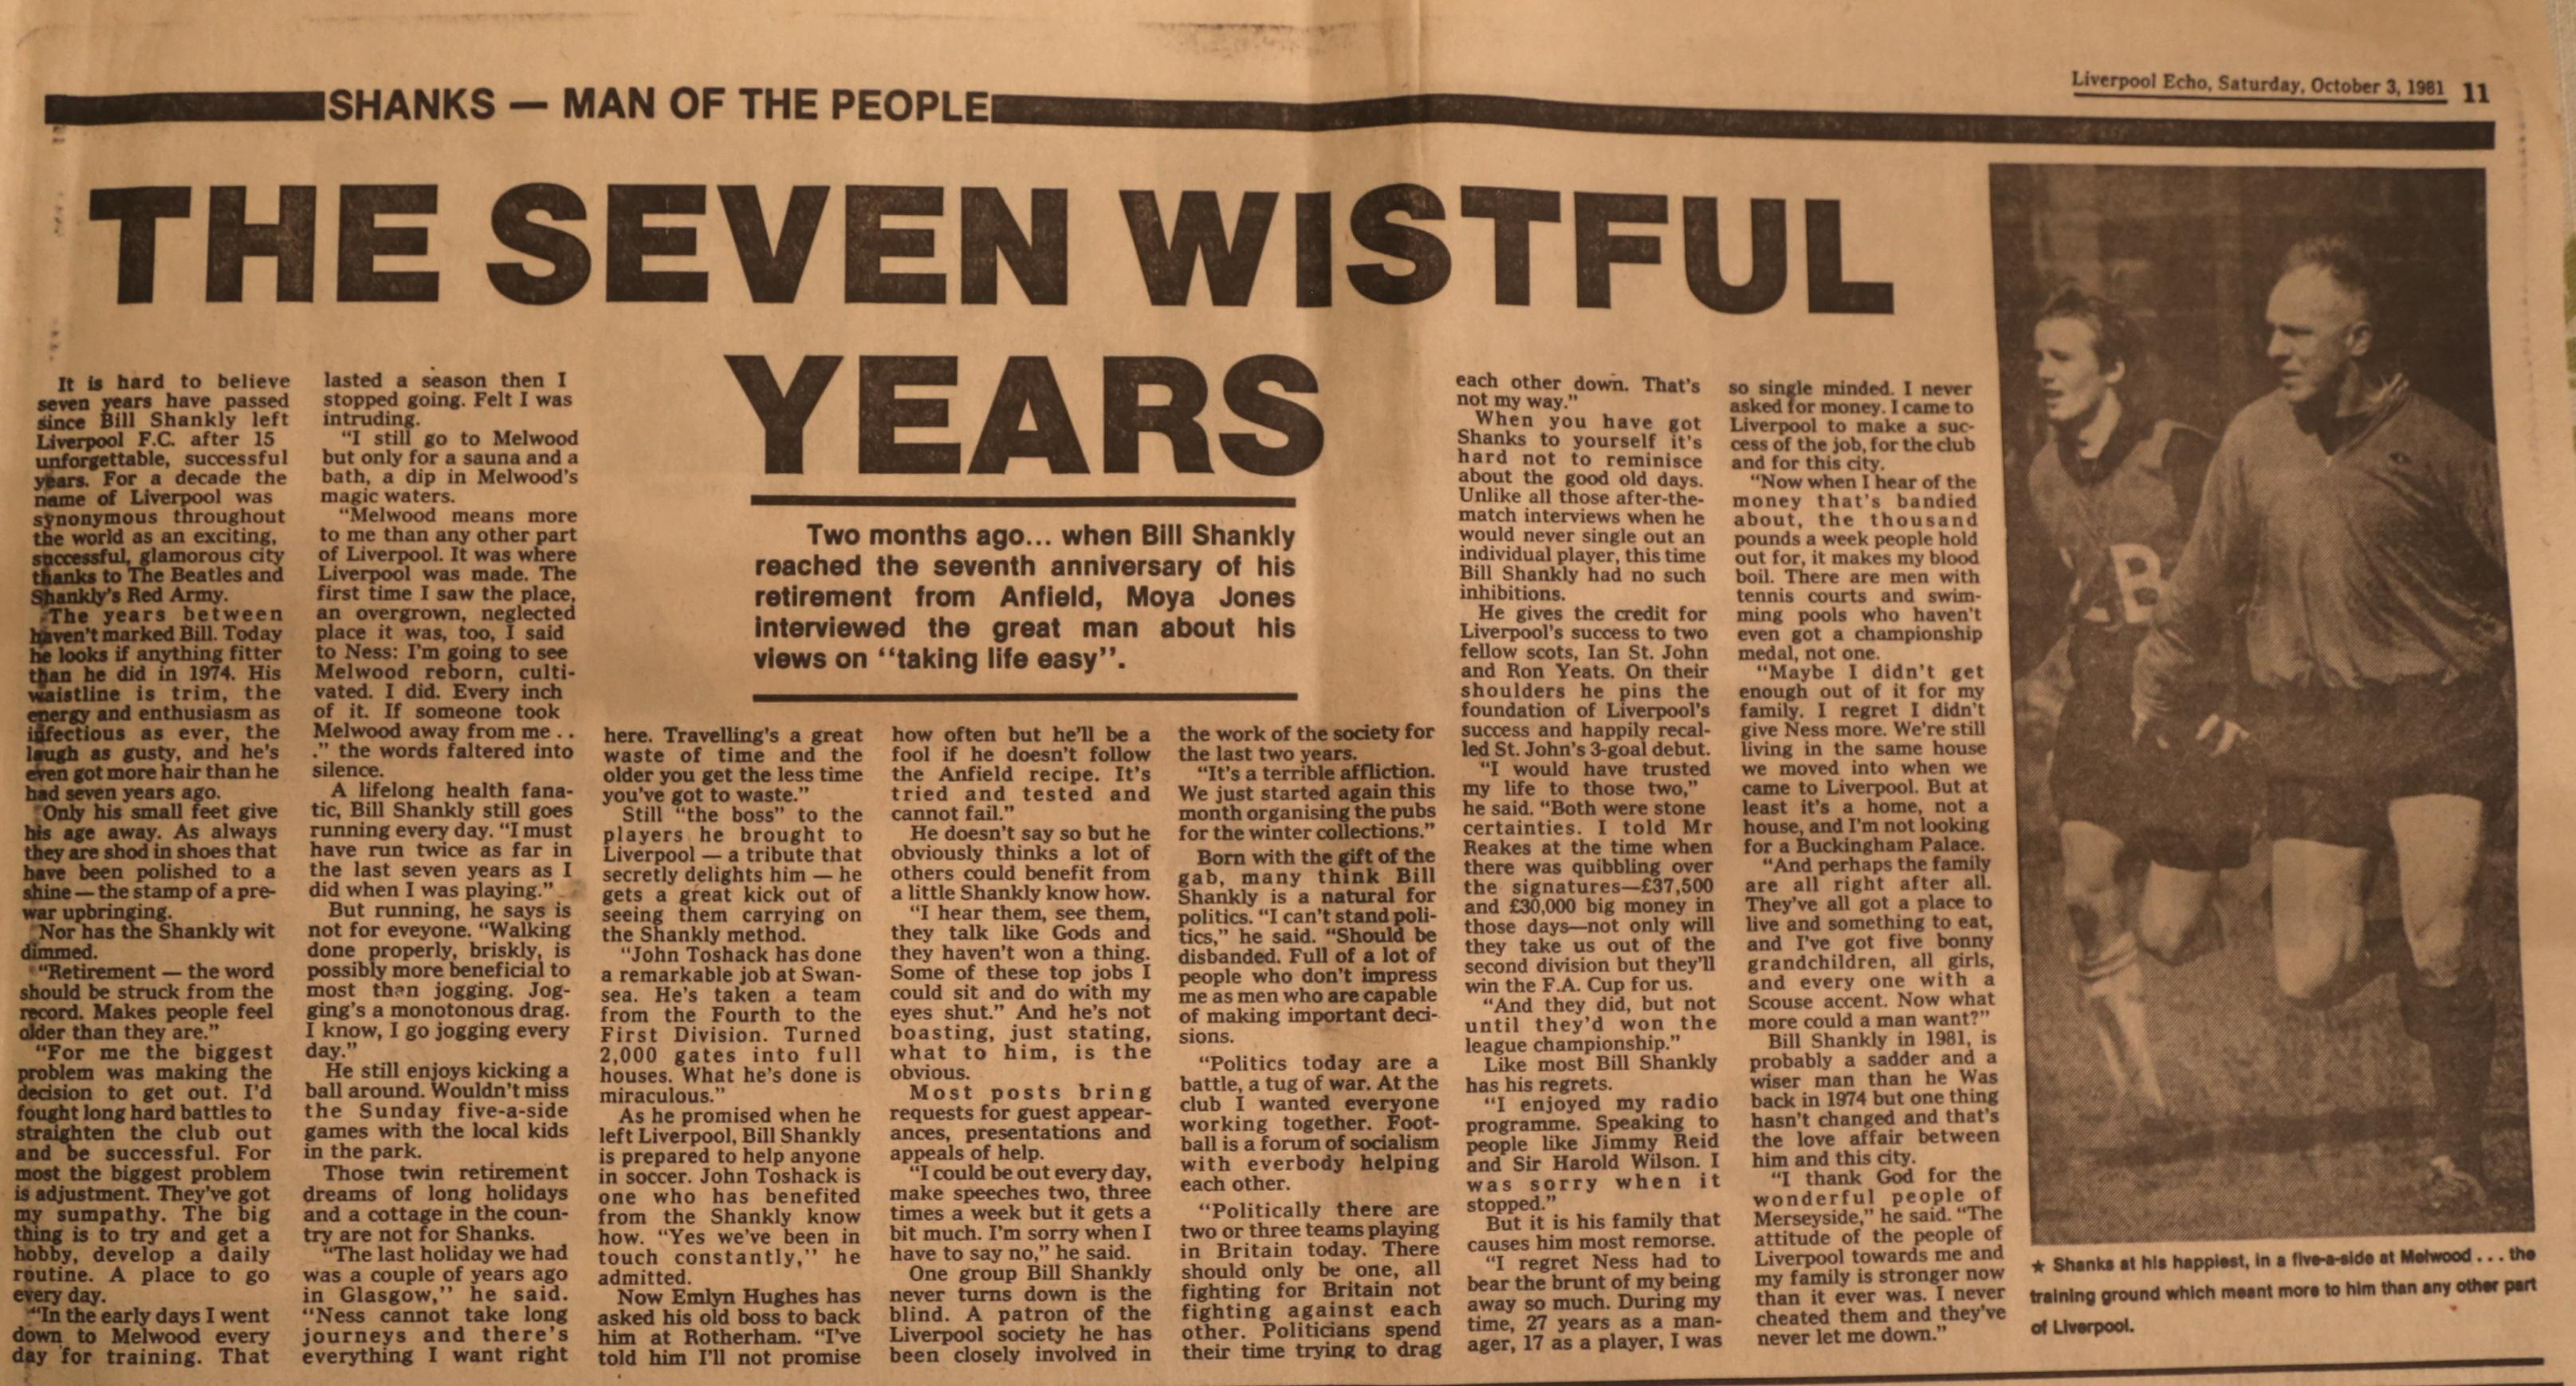 The seven wistful years - 3 October 1981